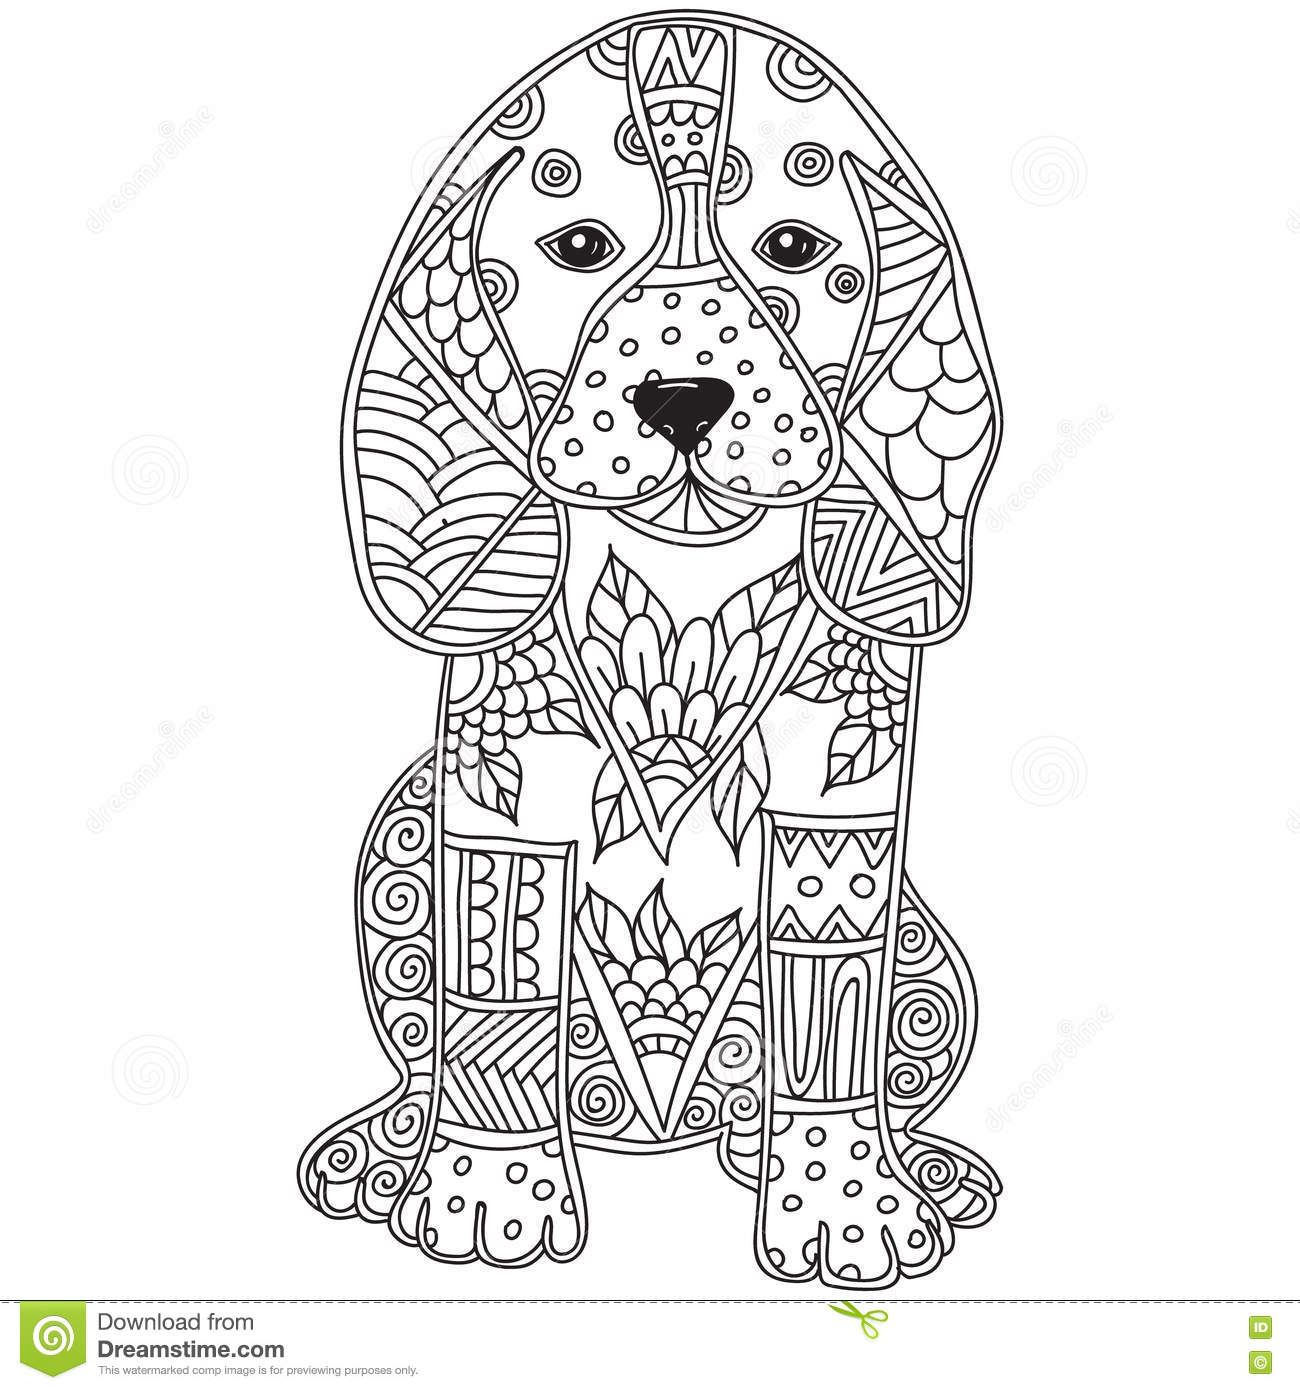 Royalty Free Vector Download Dog Adult Antistress Or Children Coloring Page